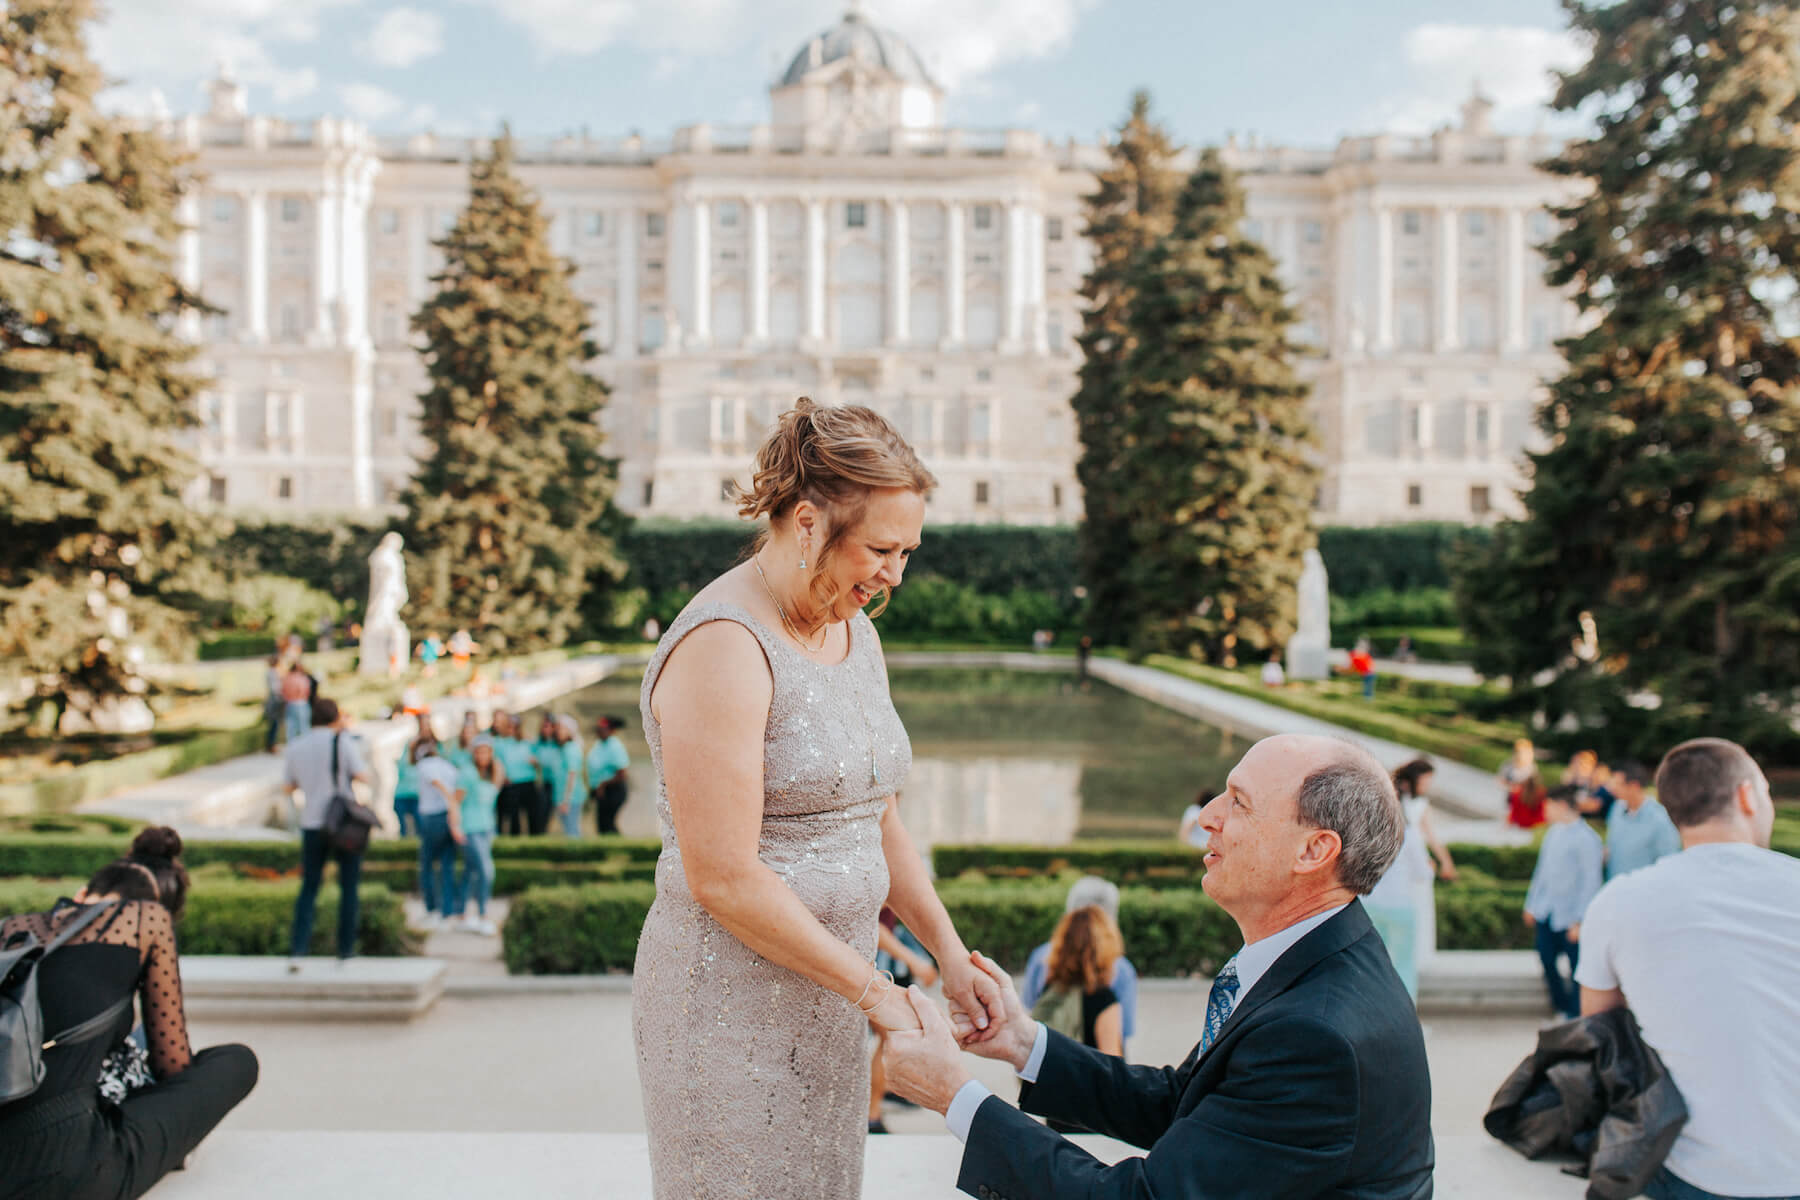 a man is on one knee proposing to a woman wearing formal dress in Madrid